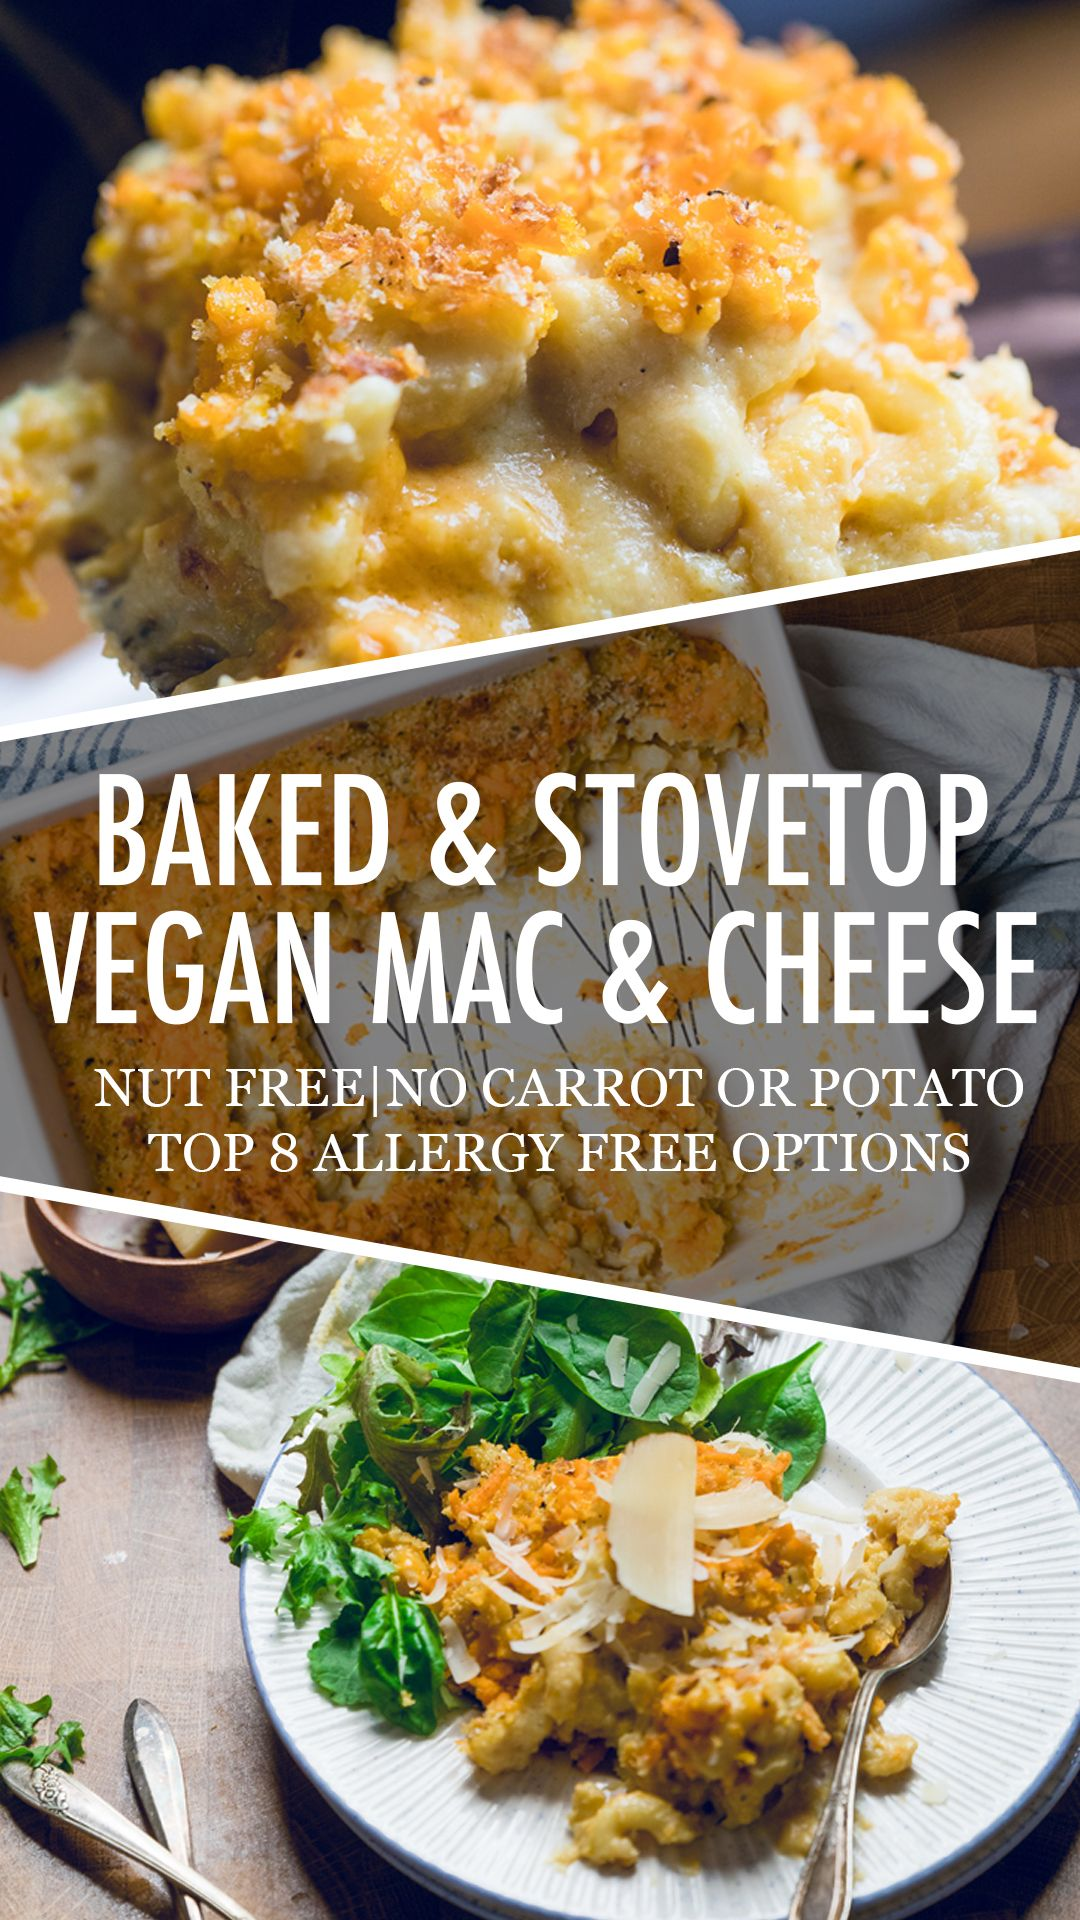 Vegan Mac And Cheese Baked And Stovetop Make It Dairy Free Vegan Mac And Cheese Tasty Vegetarian Recipes Mac And Cheese